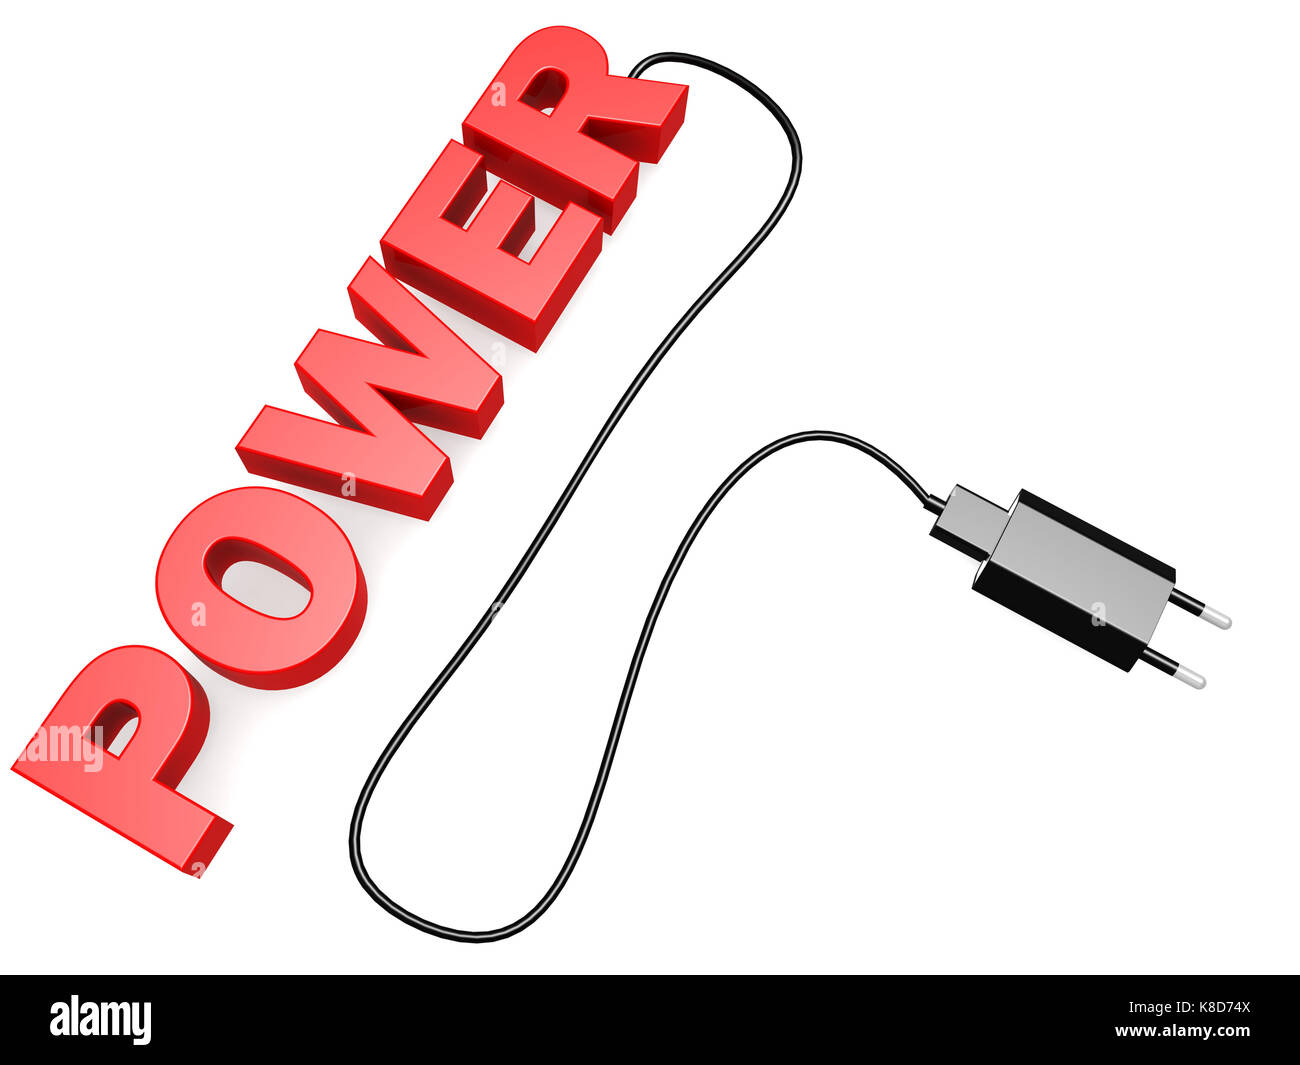 Power cord image with hi-res rendered artwork that could be used for ...